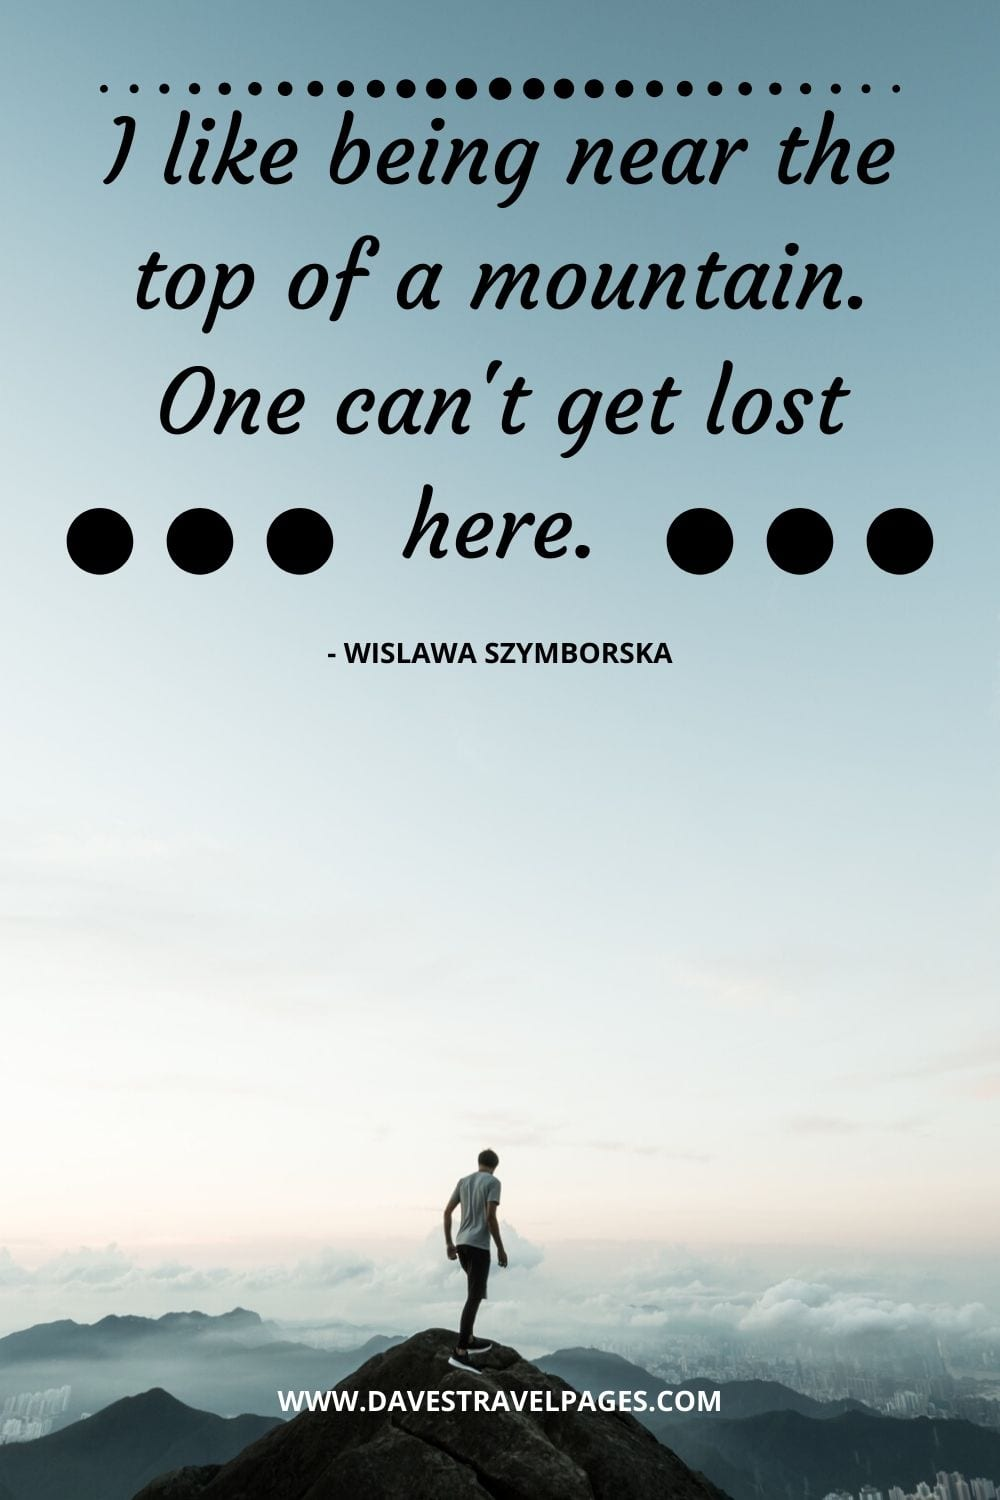 Exploring Quotes: I like being near the top of a mountain. One can't get lost here. - Wislawa Szymborska